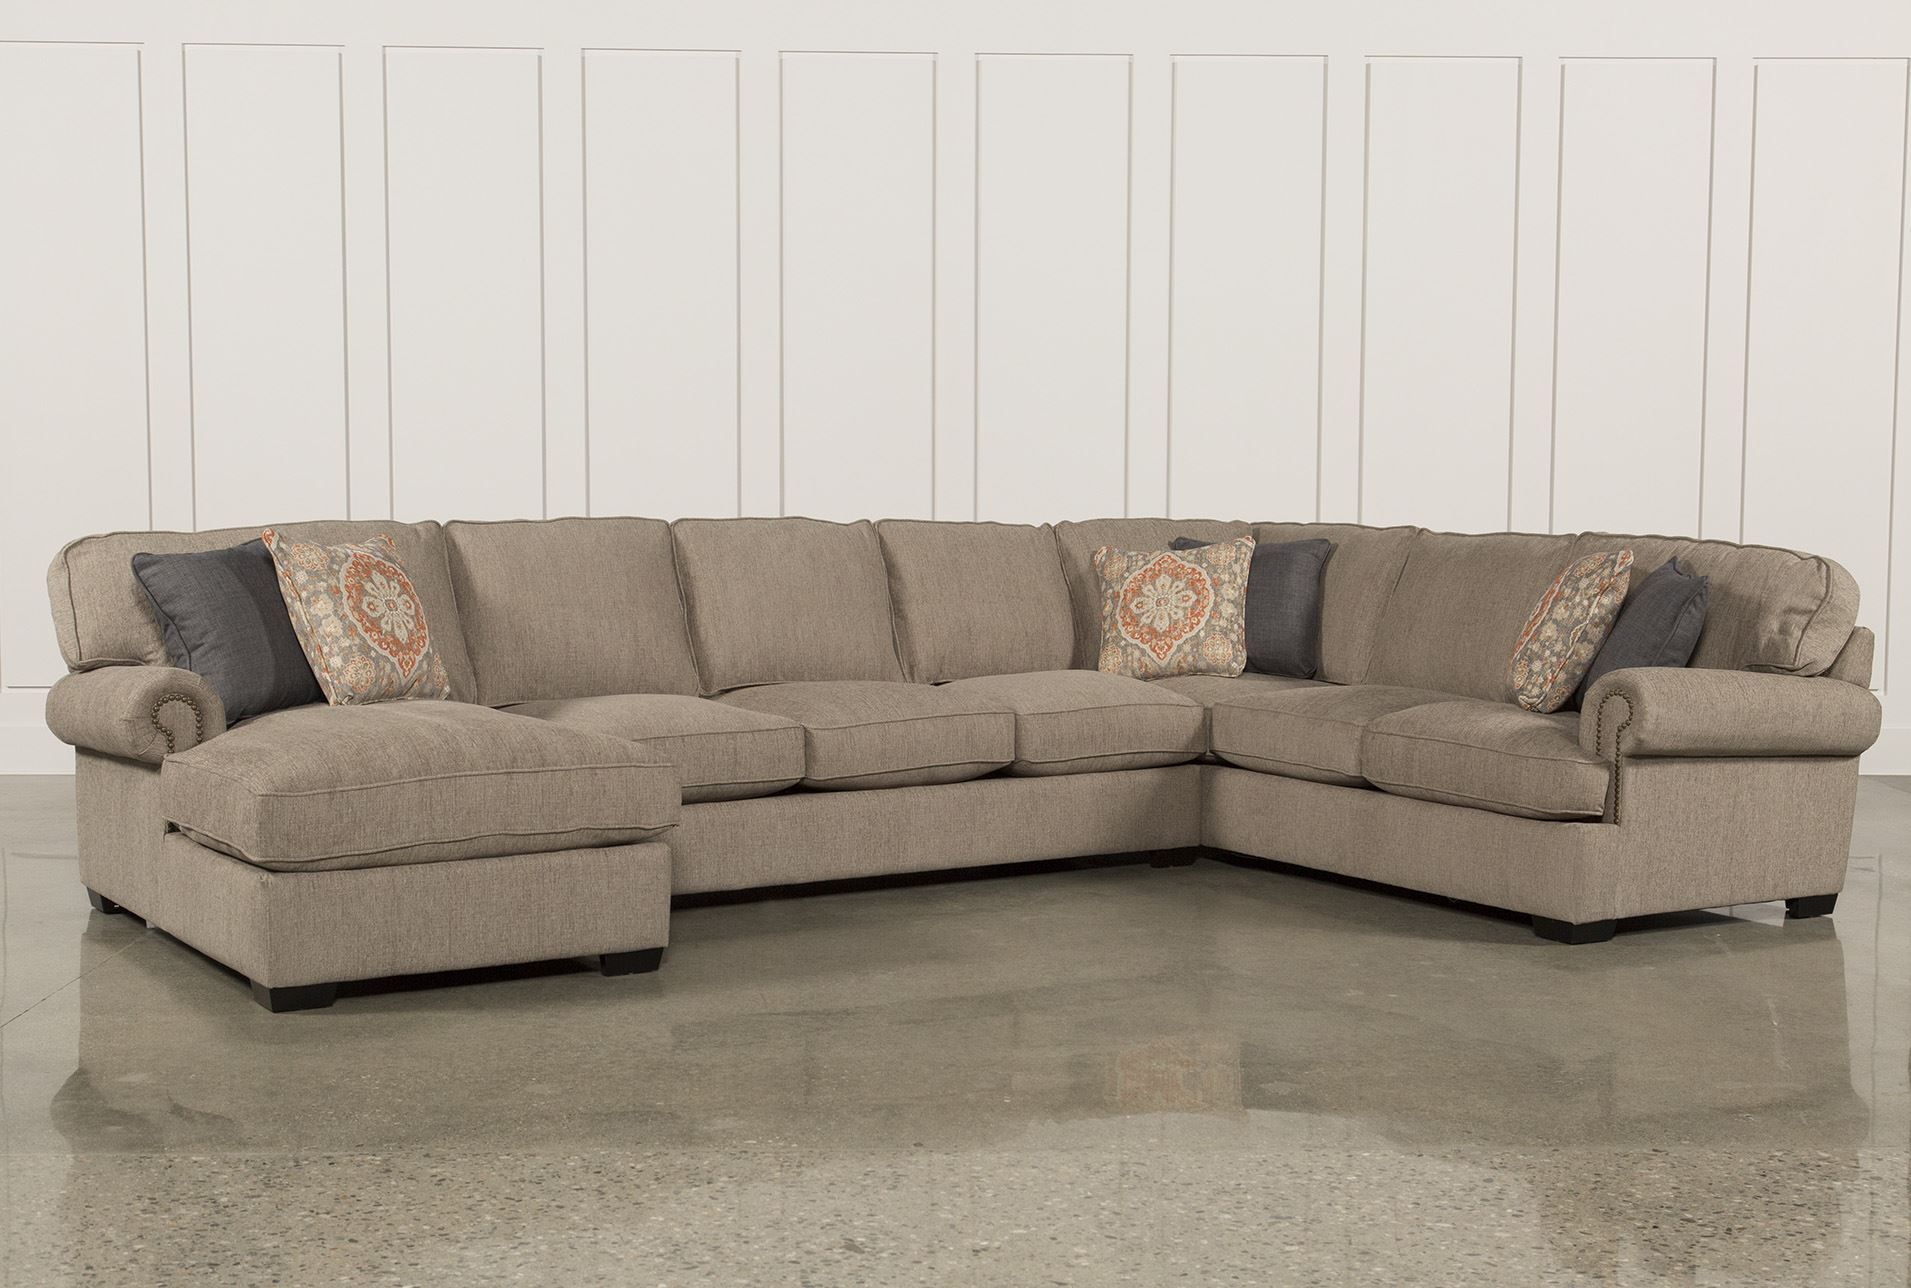 Milo Baughman 3 piece curving sectionalReupholstery style can be